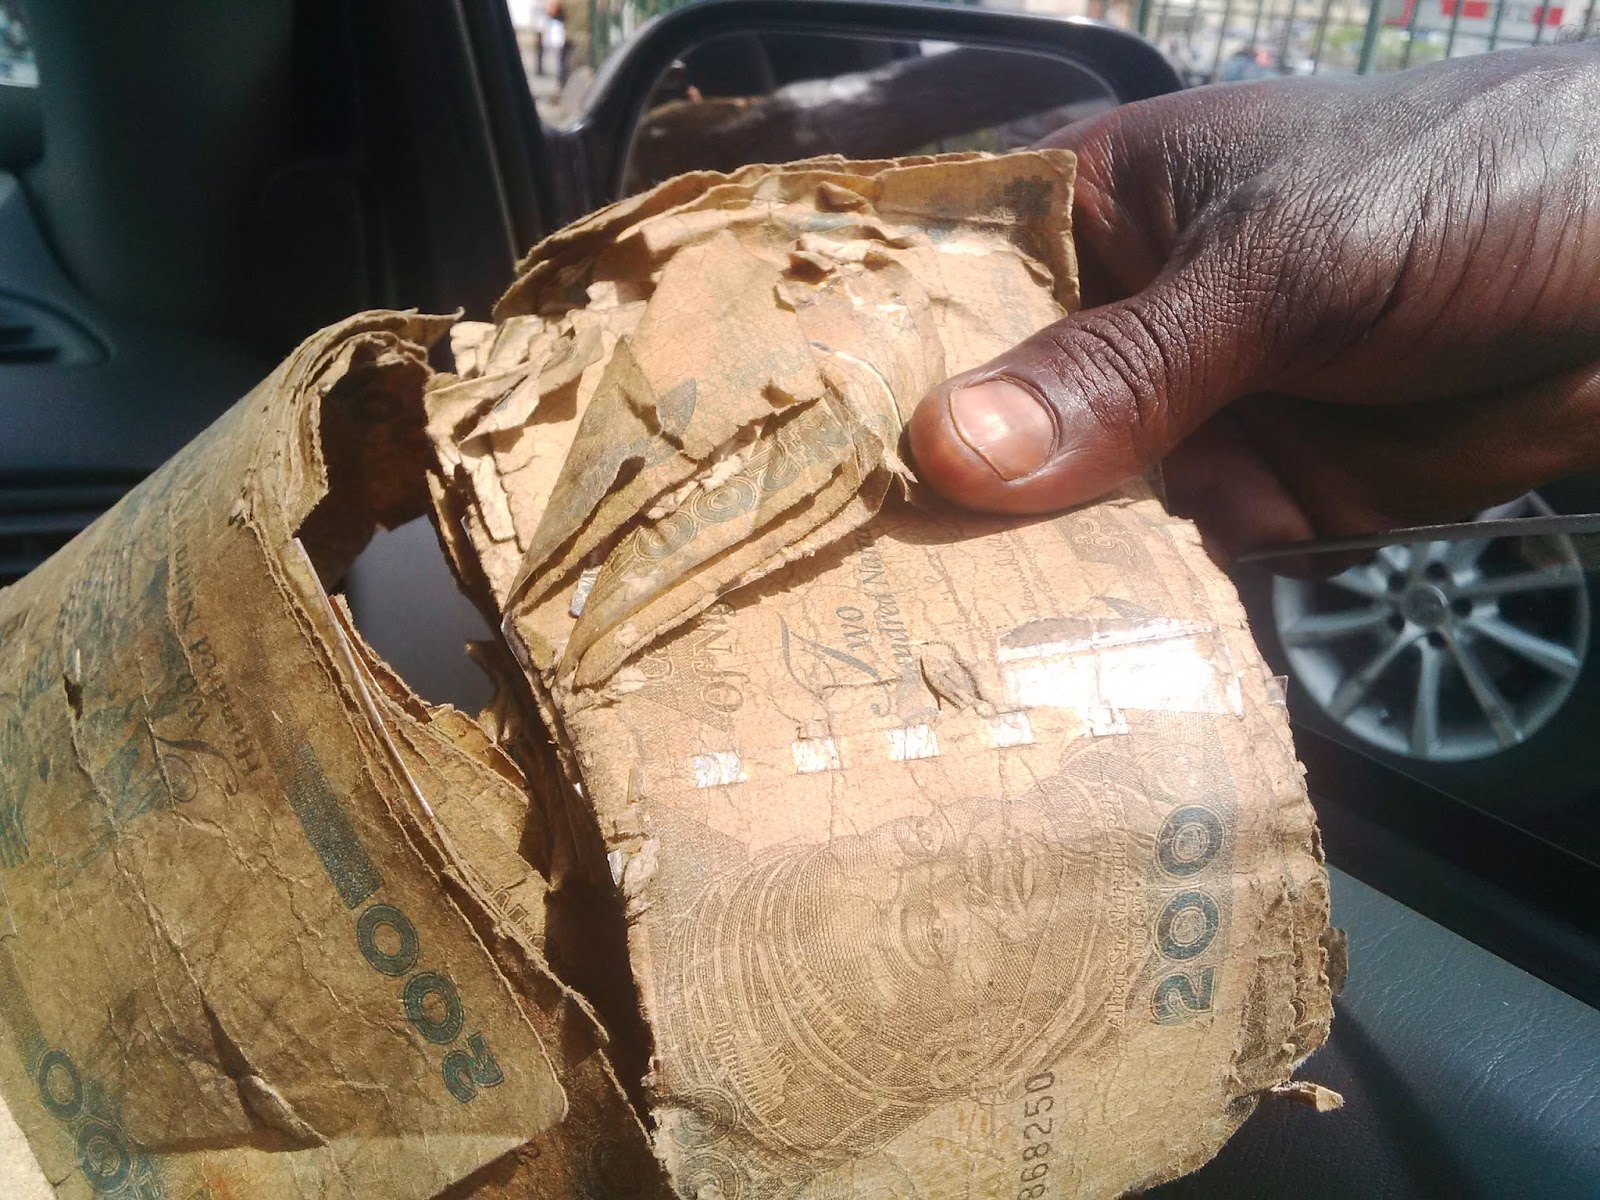 Access Bank Urges Customers to Hand Over Damaged Naira Notes